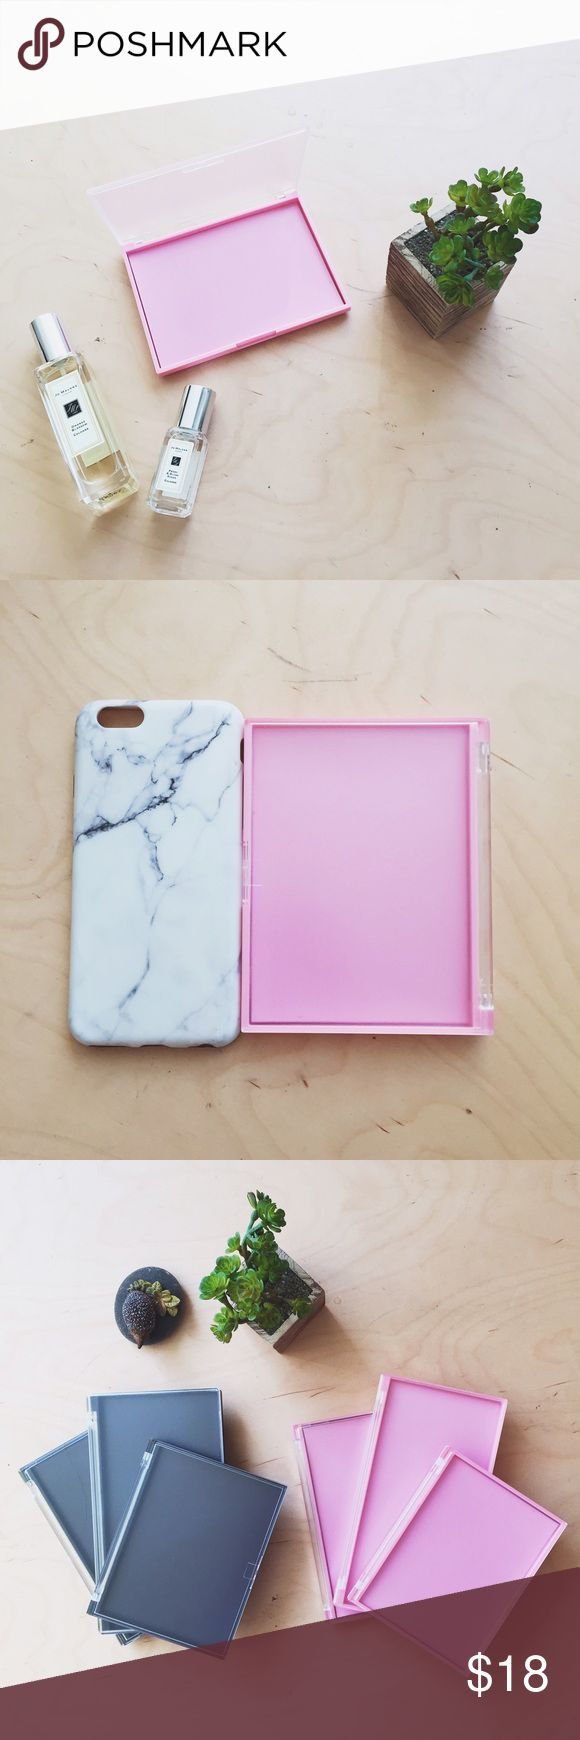 Z Palette Dupe ( Mini / Pocket-sized / Baby pink) BEST Z Palette Dupe! Empty makeup palette with customizable magnetic base in baby pink and matte finish lid. Brand Bew!  Fit well in your pocket. Size: please see comparison with iphone6 case. Makeup Brushes & Tools